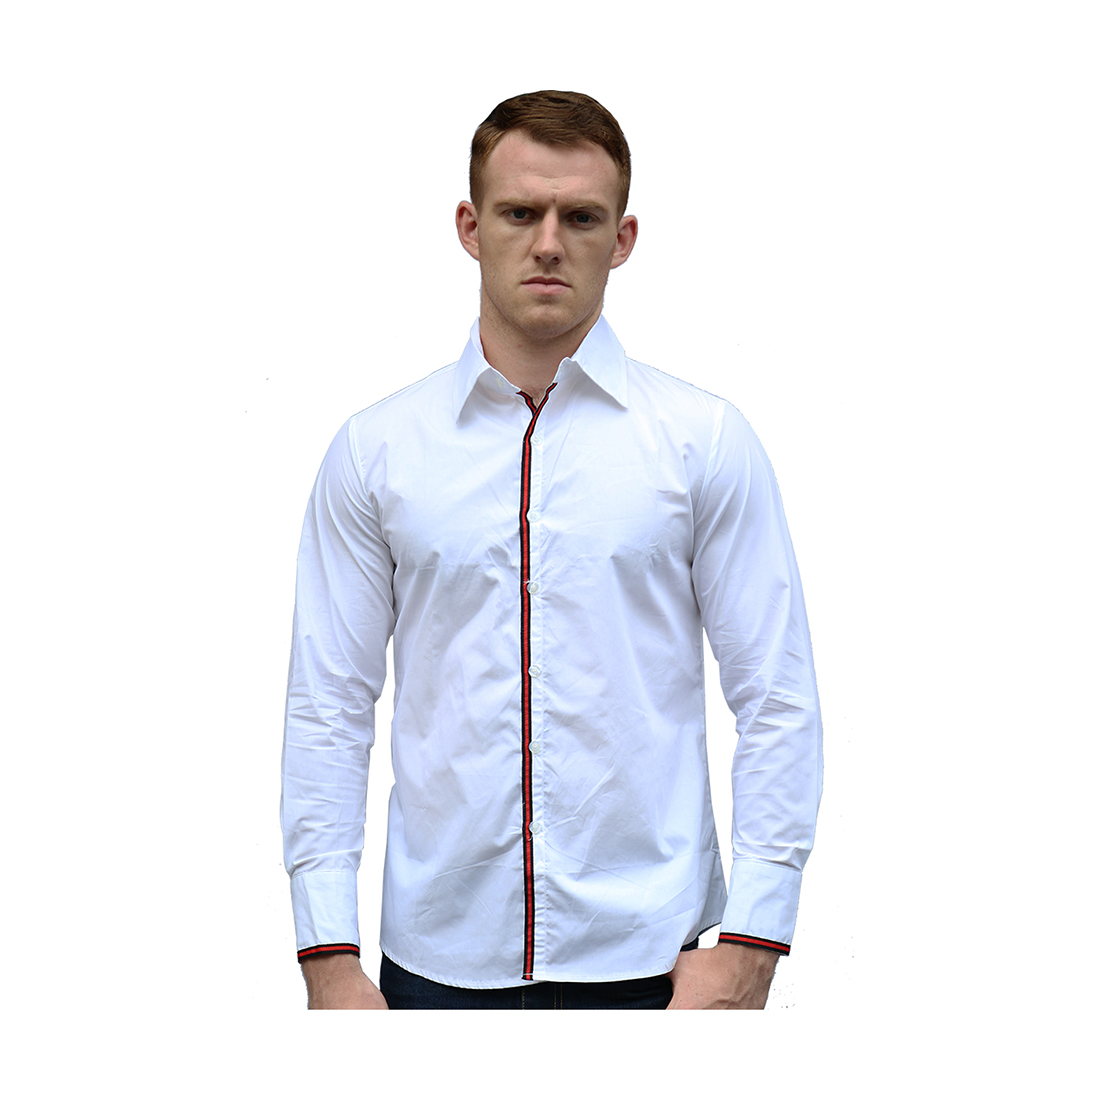 Unique Bargains Men's Long Sleeve Button Up Shirt With Stripe Trim White (Size M / 40)